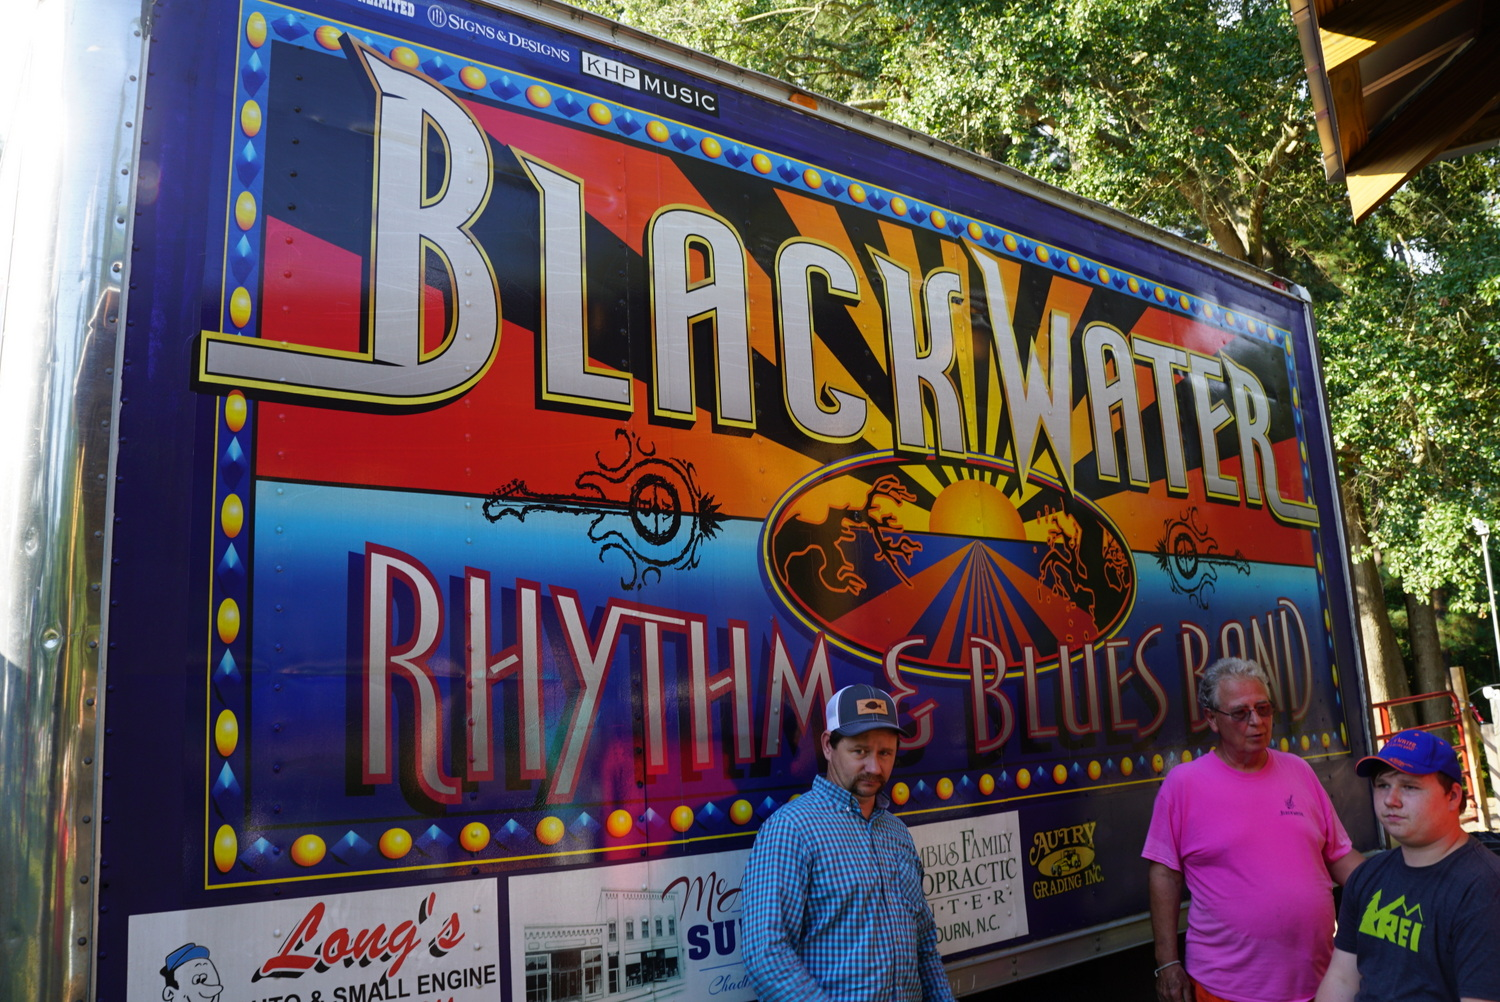 Black Water Rhythm & Blues band truck